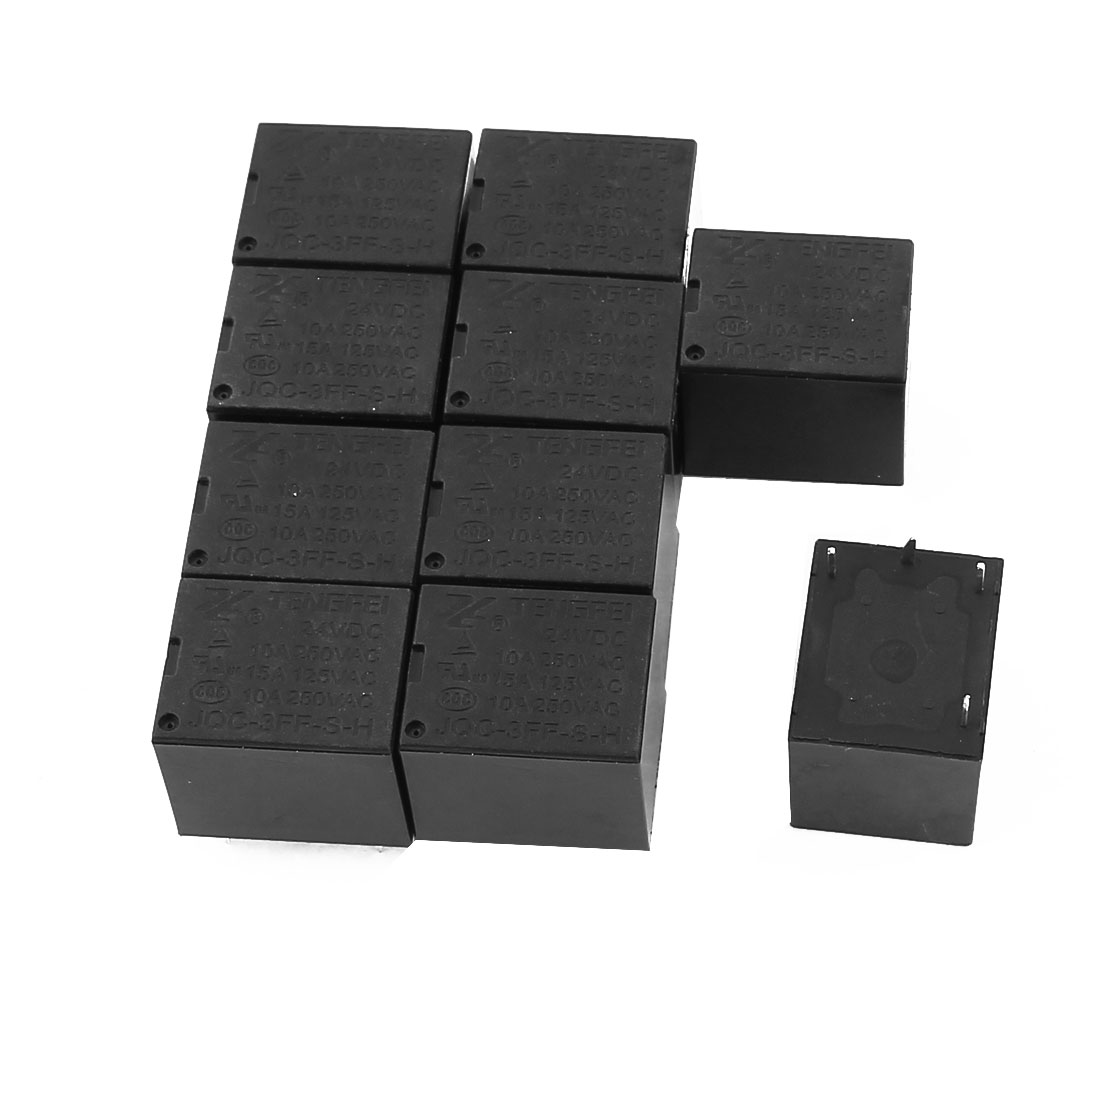 10 Pcs 24VDC 250VAC 10A 4 Terminal SPST NO  Power Coil Electromagnetic Relay - image 2 of 2